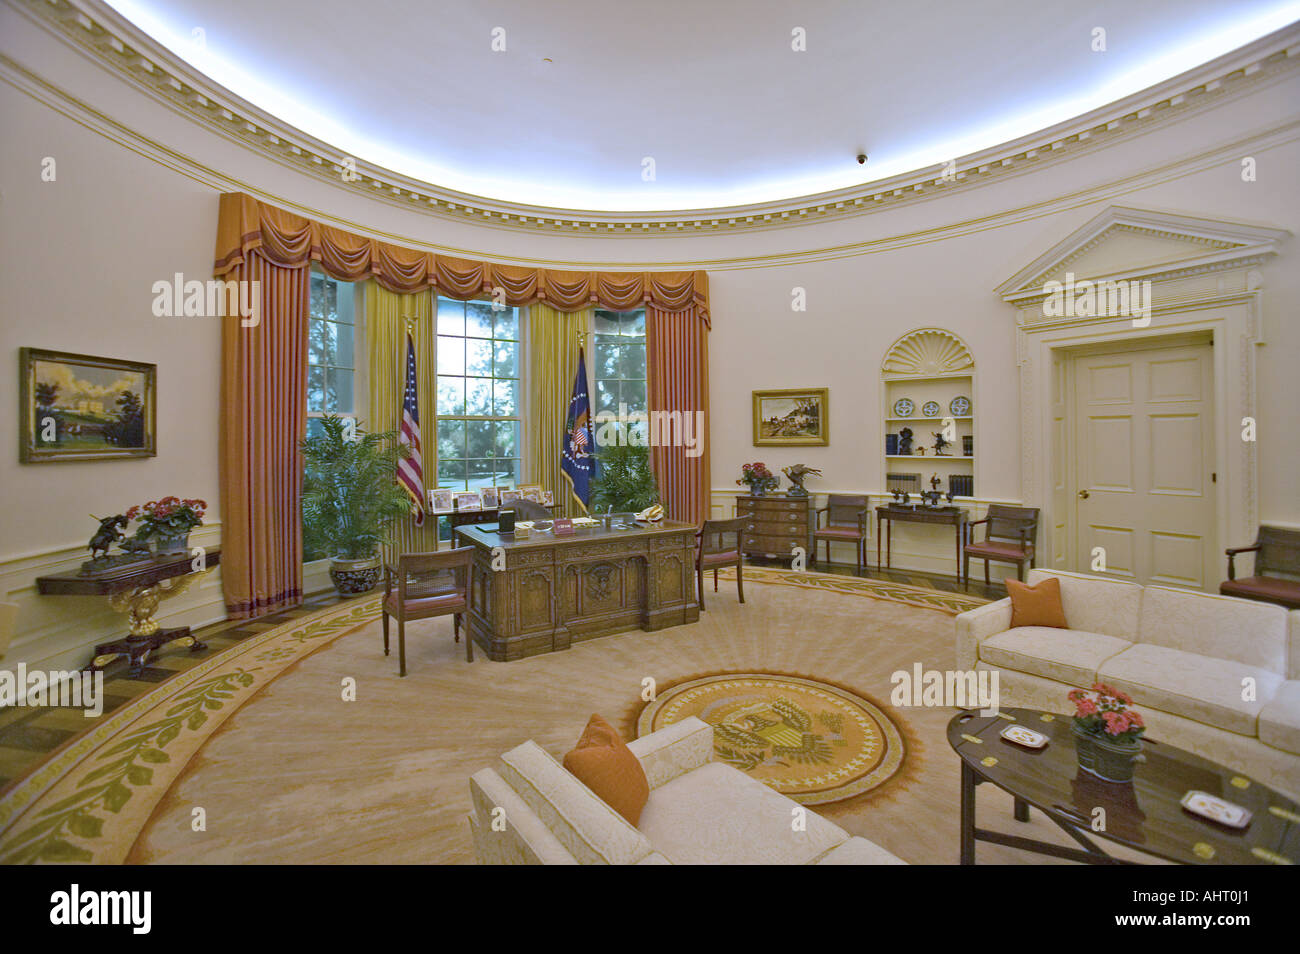 reagan oval office. Replica Of The White House Oval Office On Display At Ronald Reagan Presidential Library And Museum Simi Valley CA F